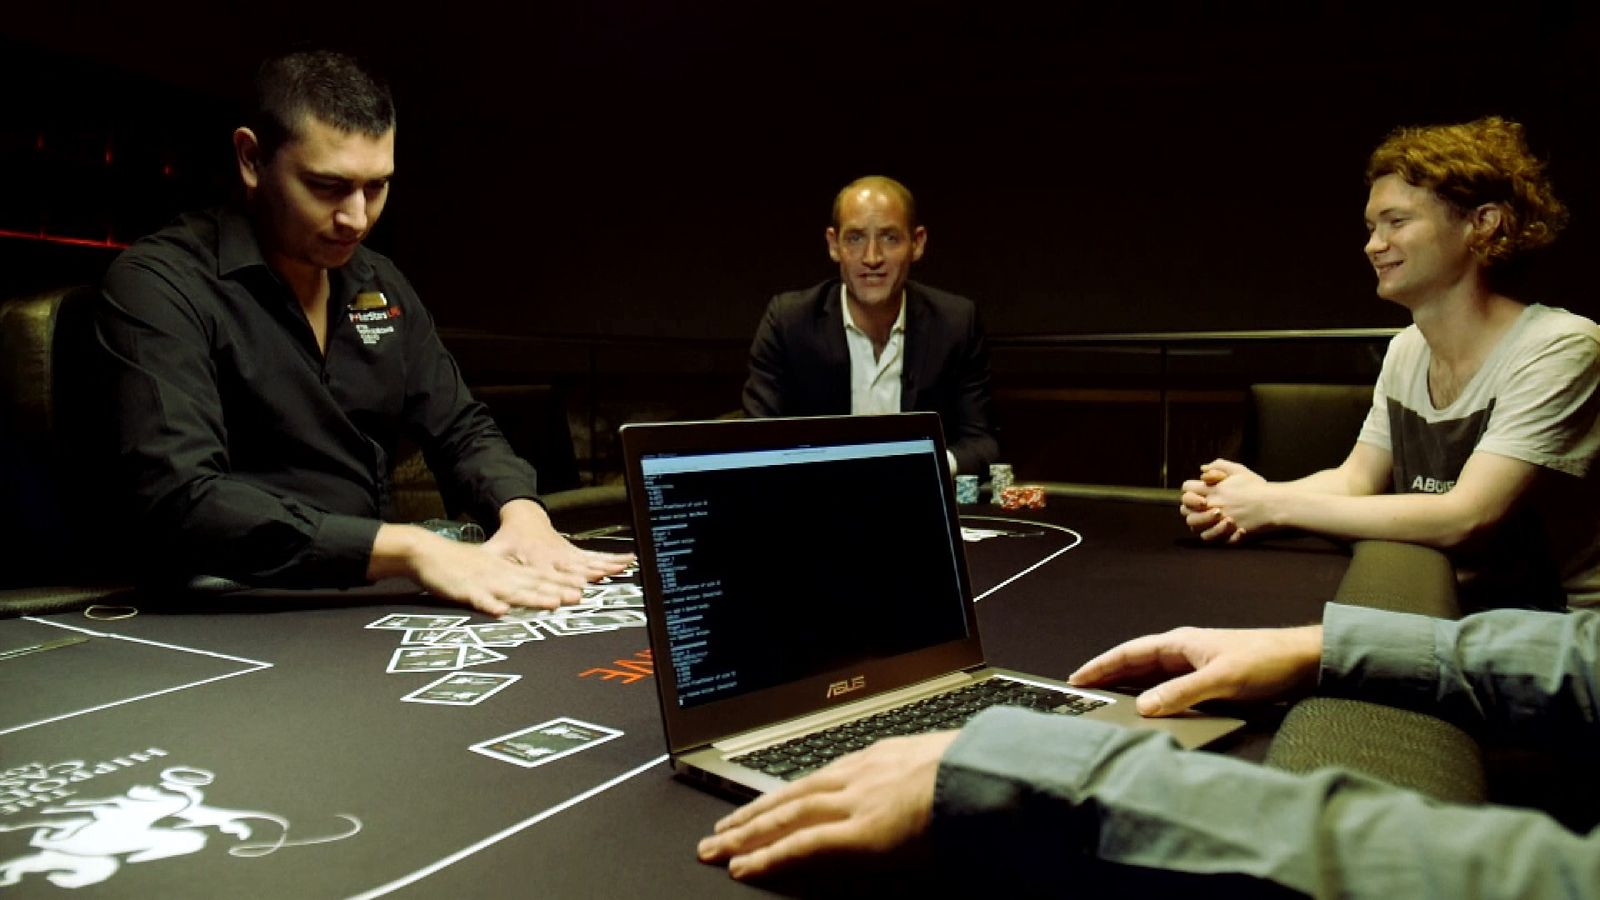 Sky's Tom Cheshire takes on a computer at poker